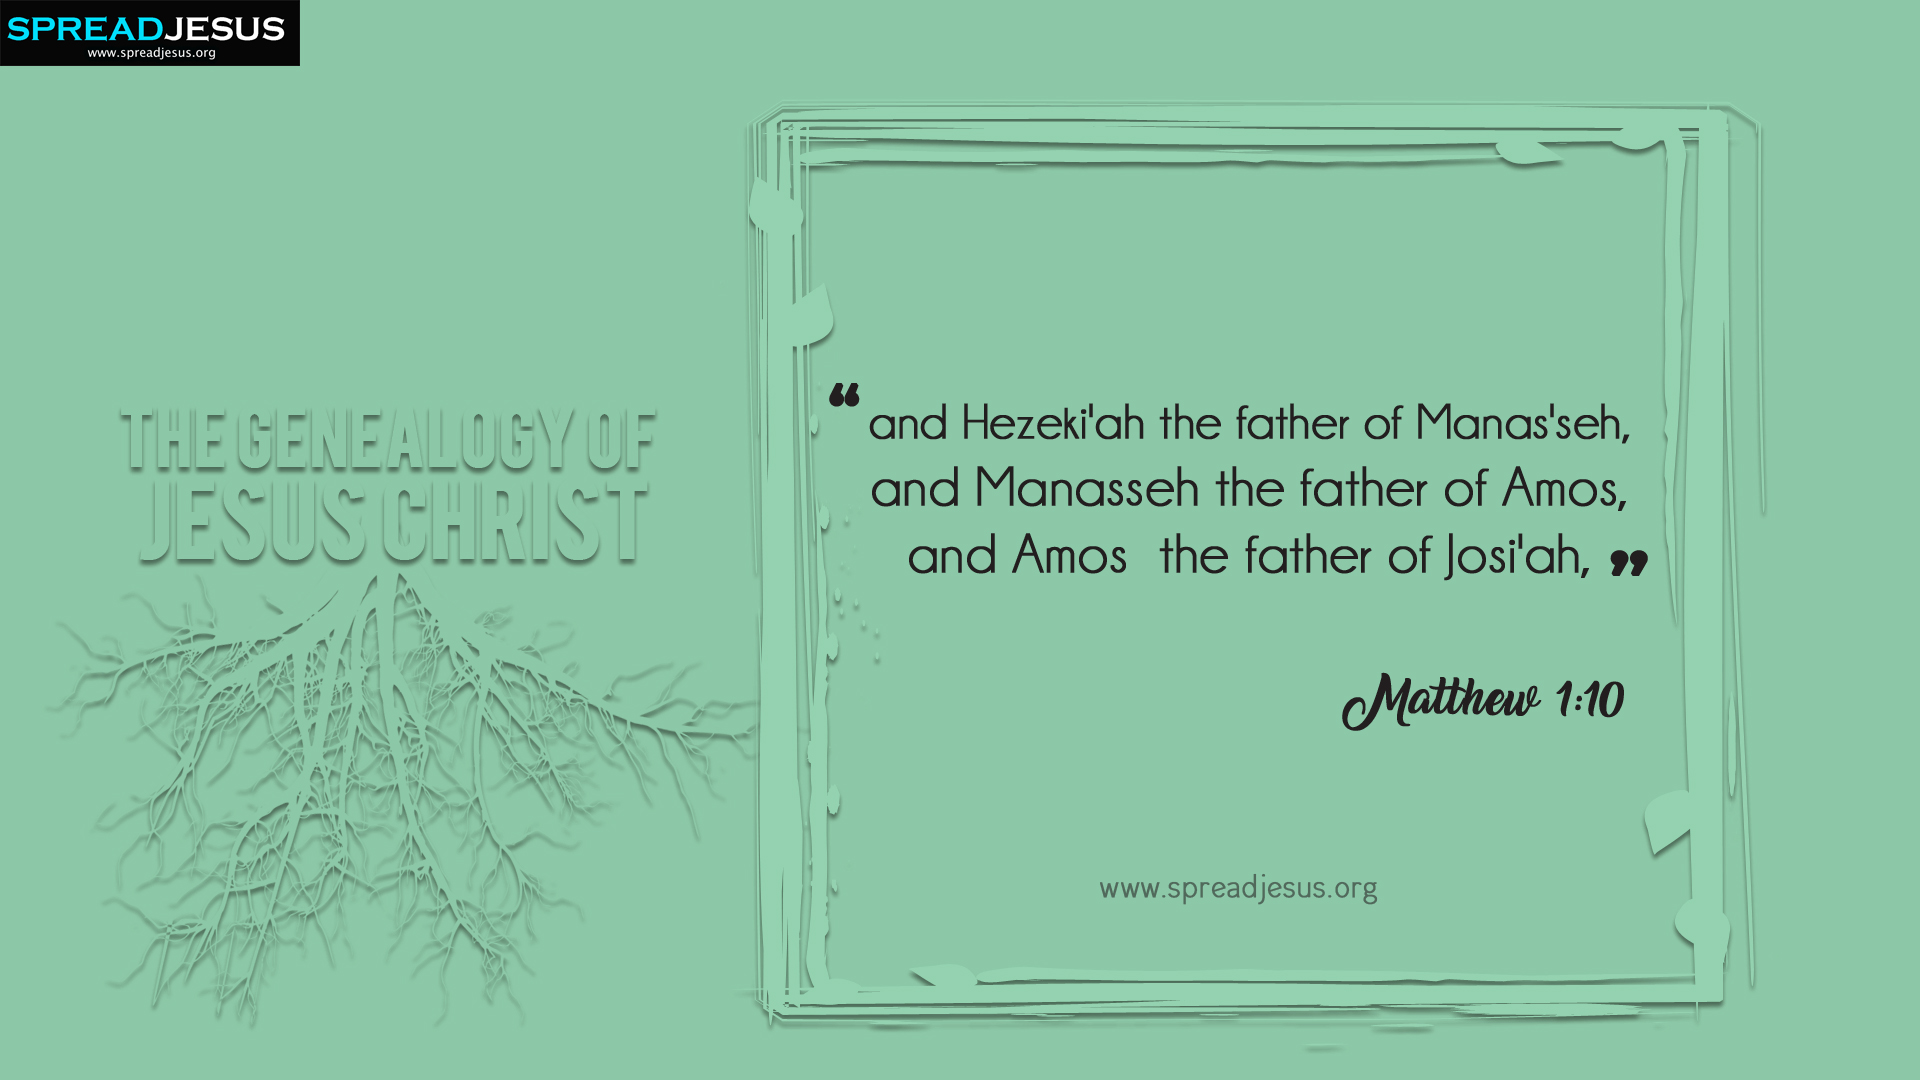 The Genealogy of Jesus Christ Matthew 1:10 HD-Wallpapers